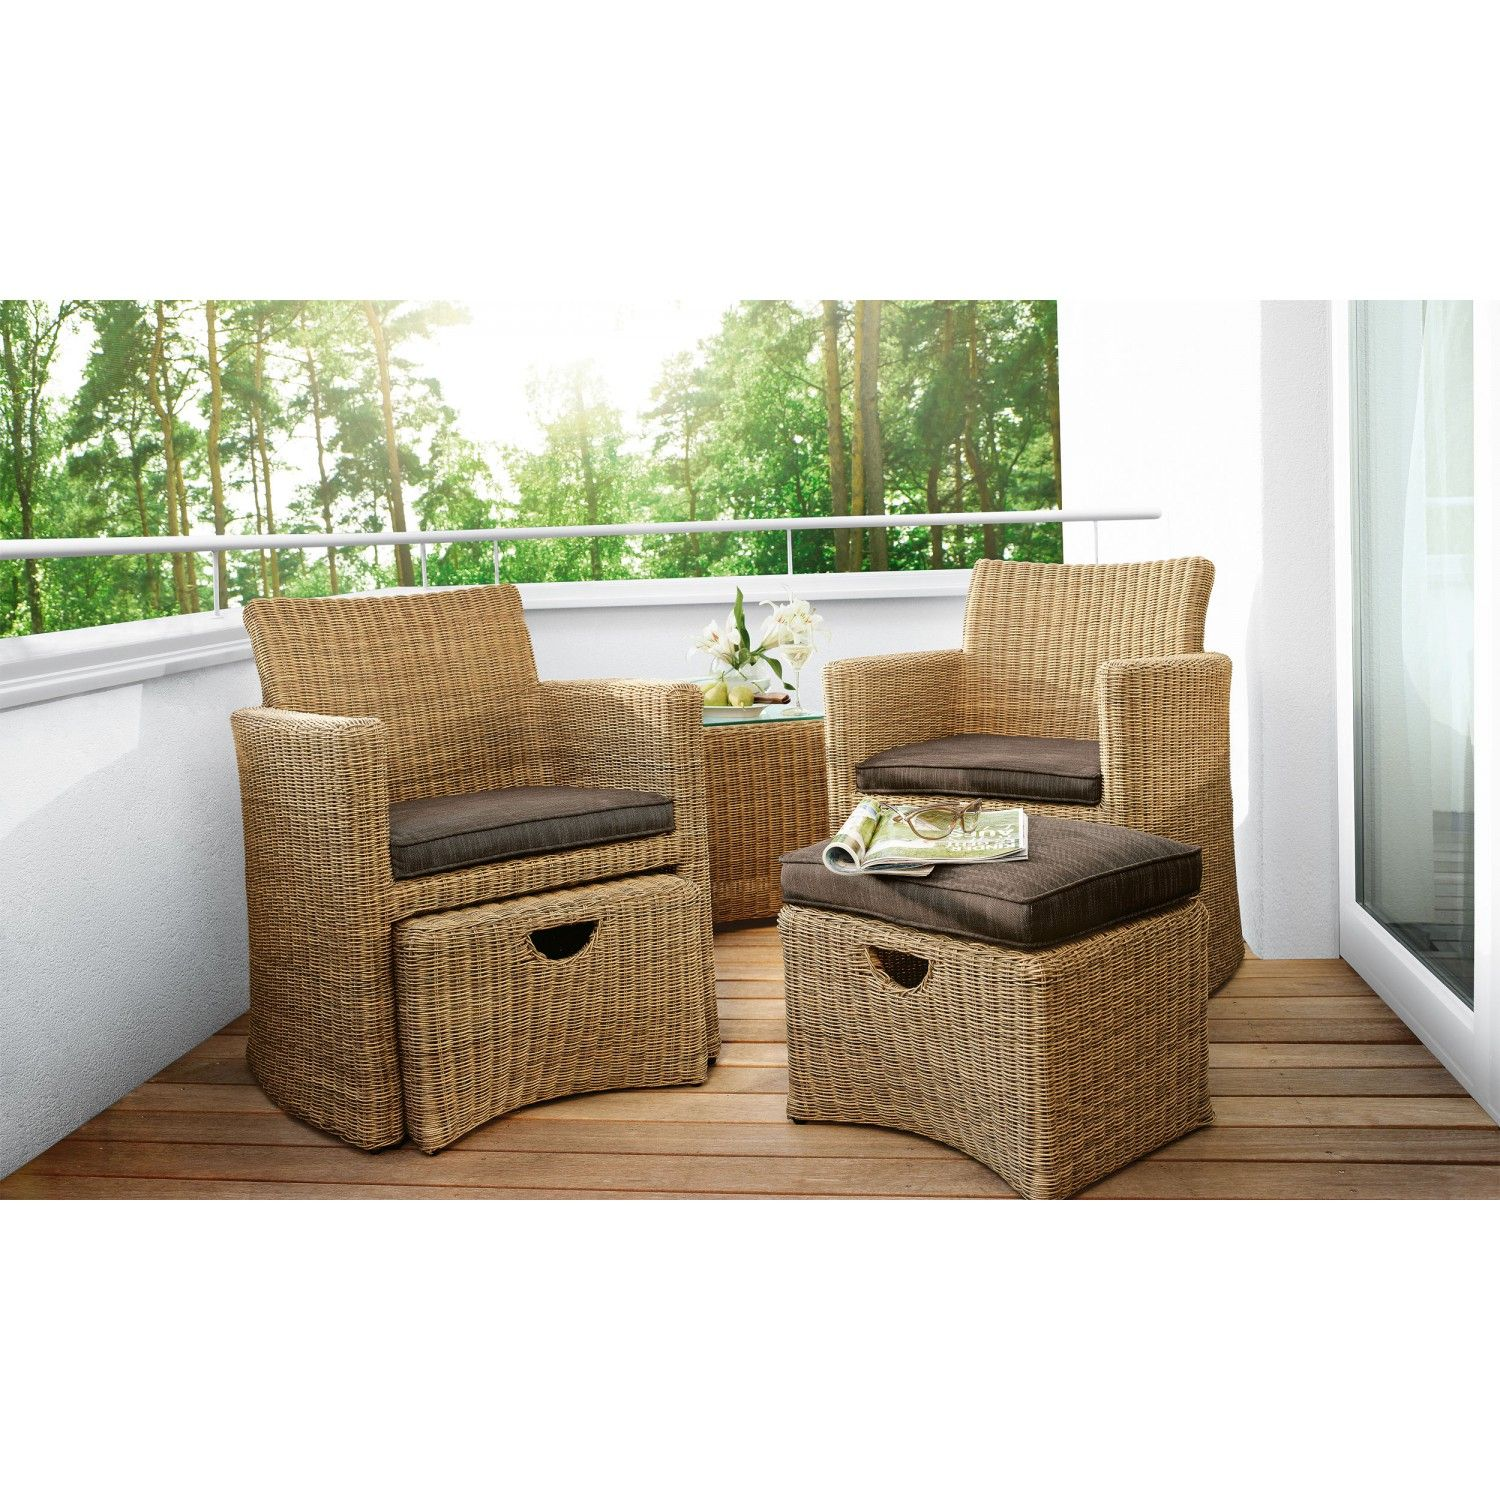 KETTLER HKS Sessel Set / Lounge Set CUPIDO Produktbild 1 | New home ...